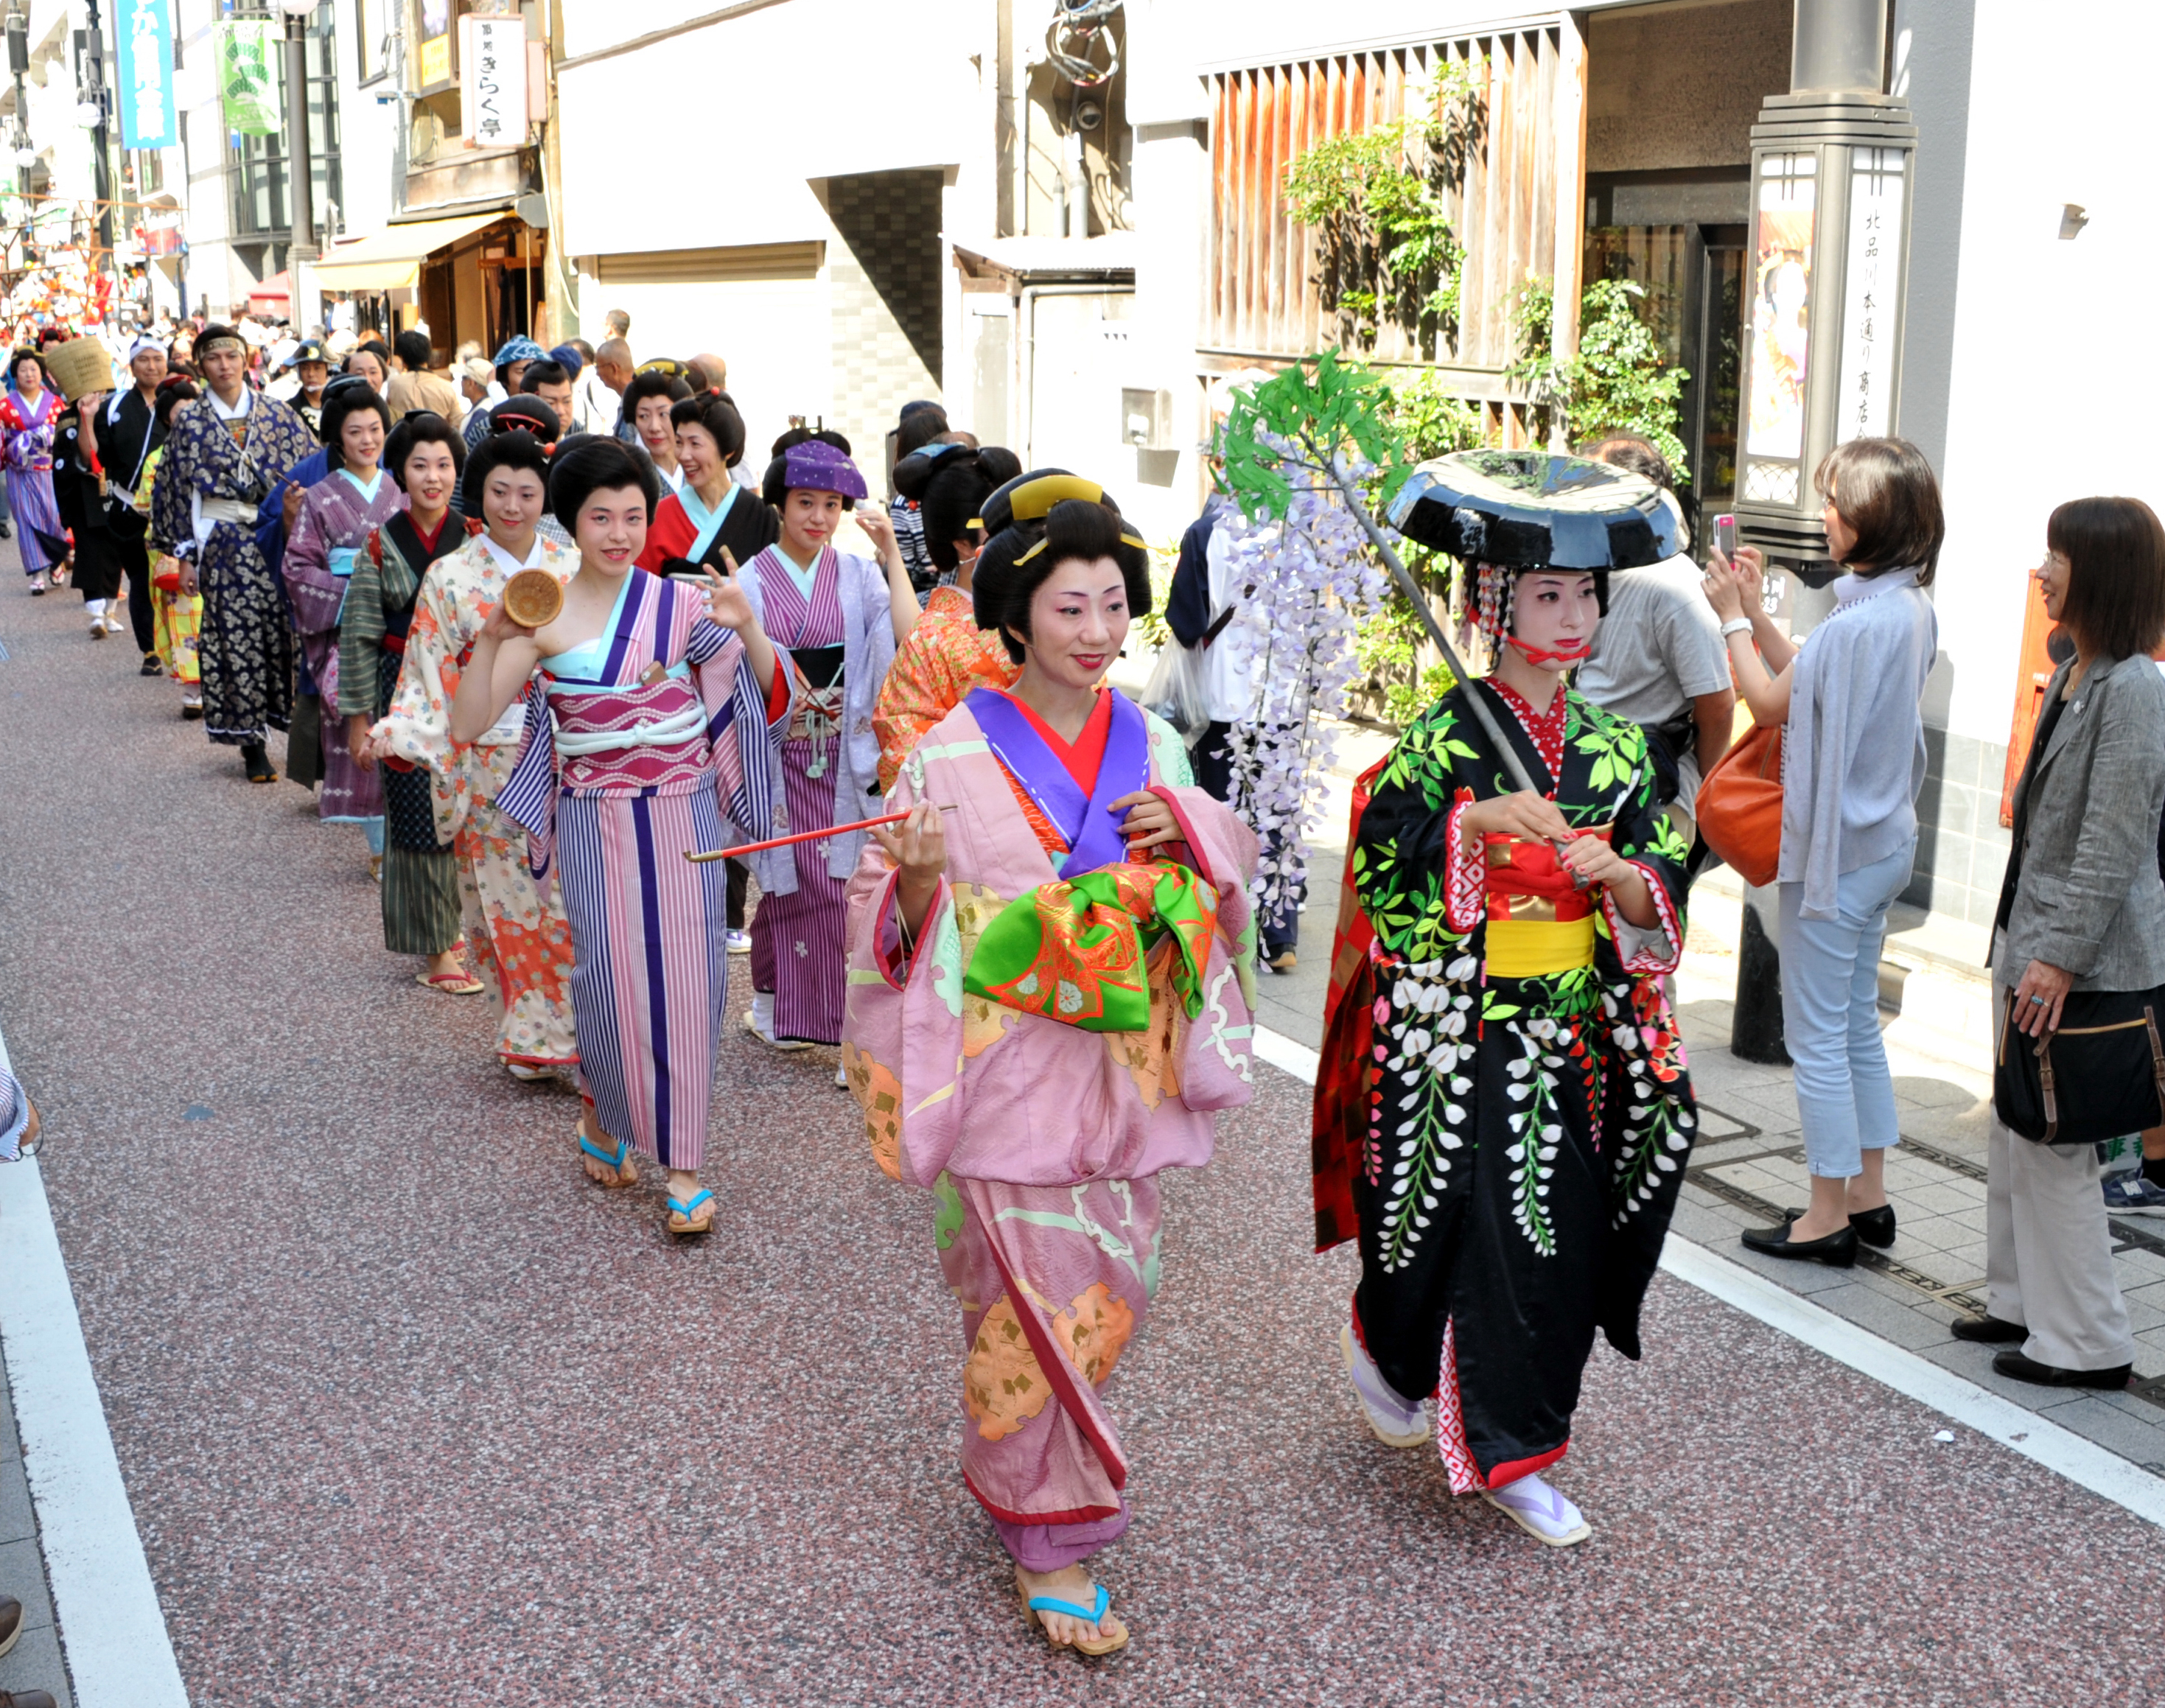 People in period costumes take part in the Edo Fuzoku Gyoretsu (Edo Culture Parade) near part of the former Tokaido Road between the Yatsuyama and Aomonoyokocho districts of Shinagawa Ward, Tokyo, on Sept. 28.